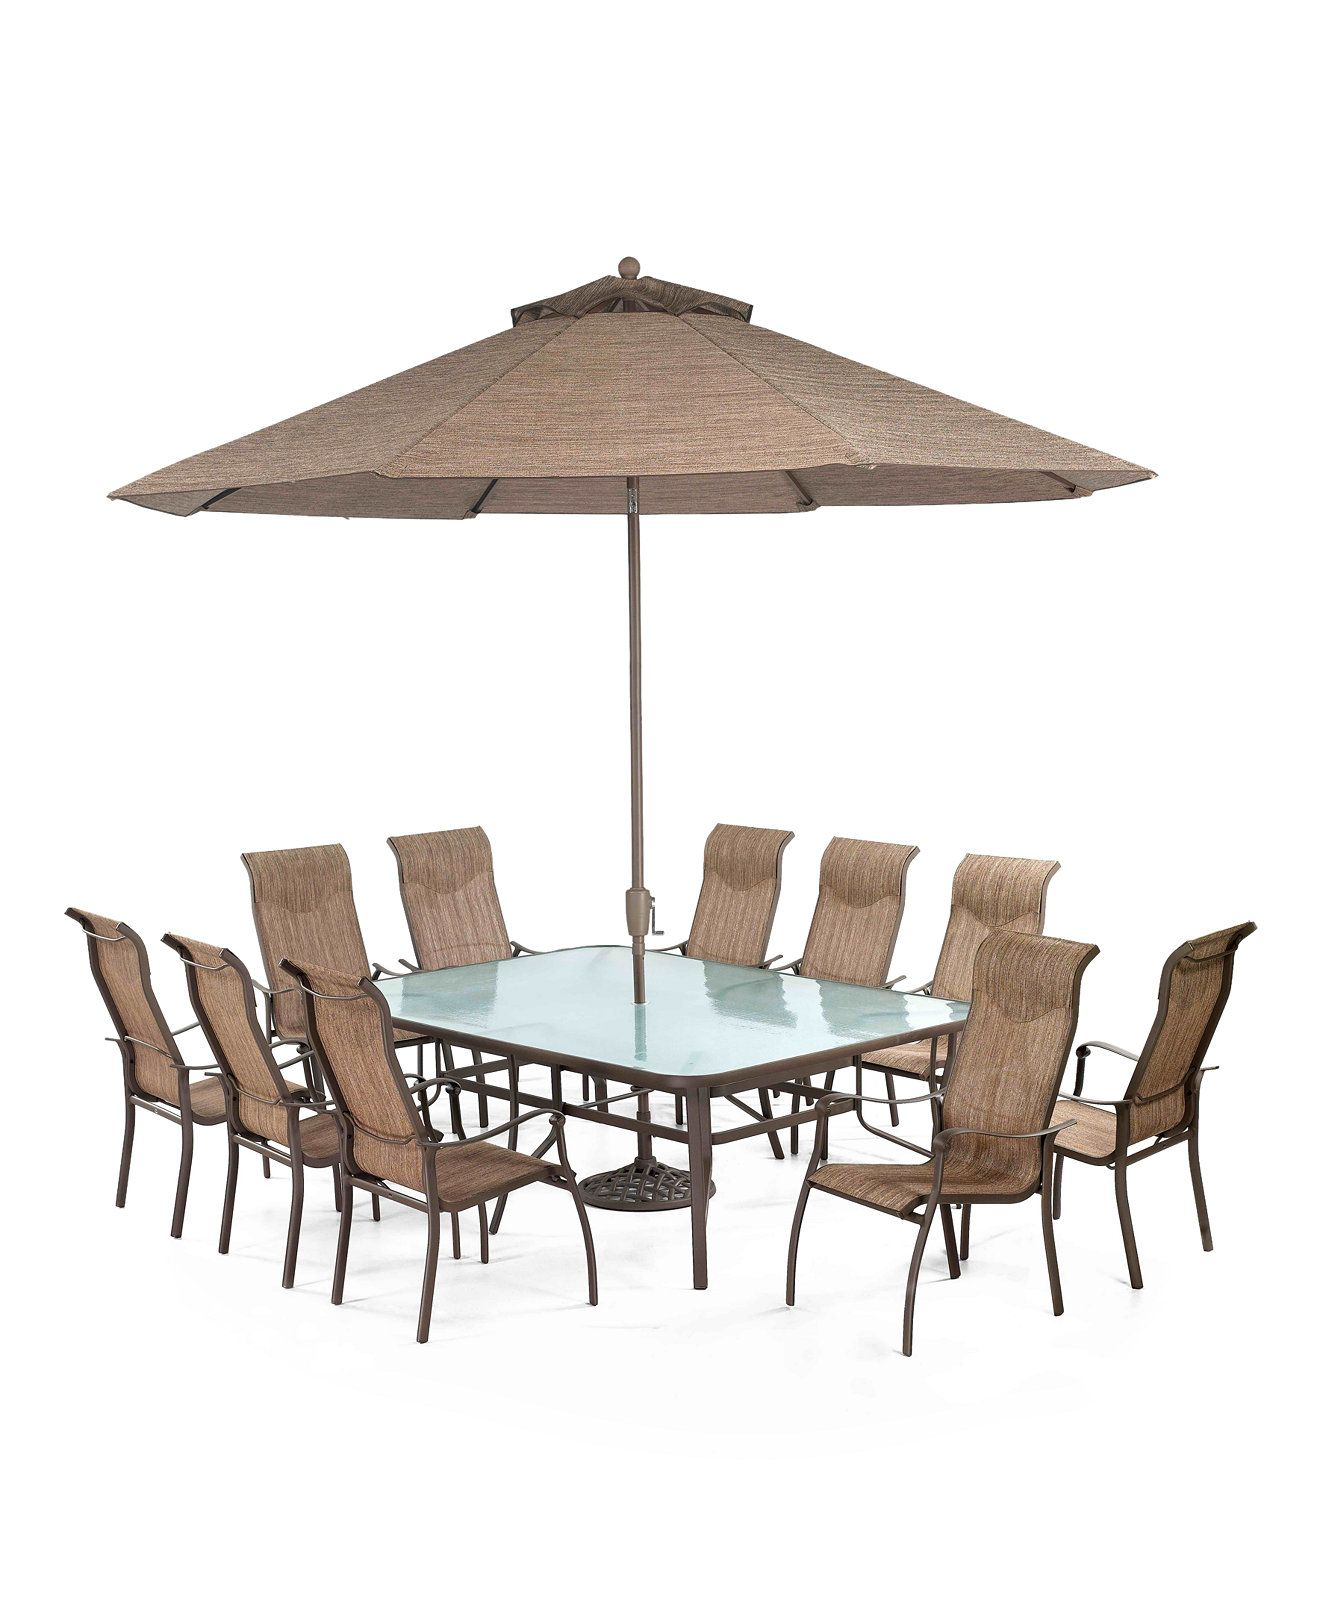 "ONLINE EXCLUSIVE Oasis Outdoor Aluminum 11 Pc Dining Set 84"" x"